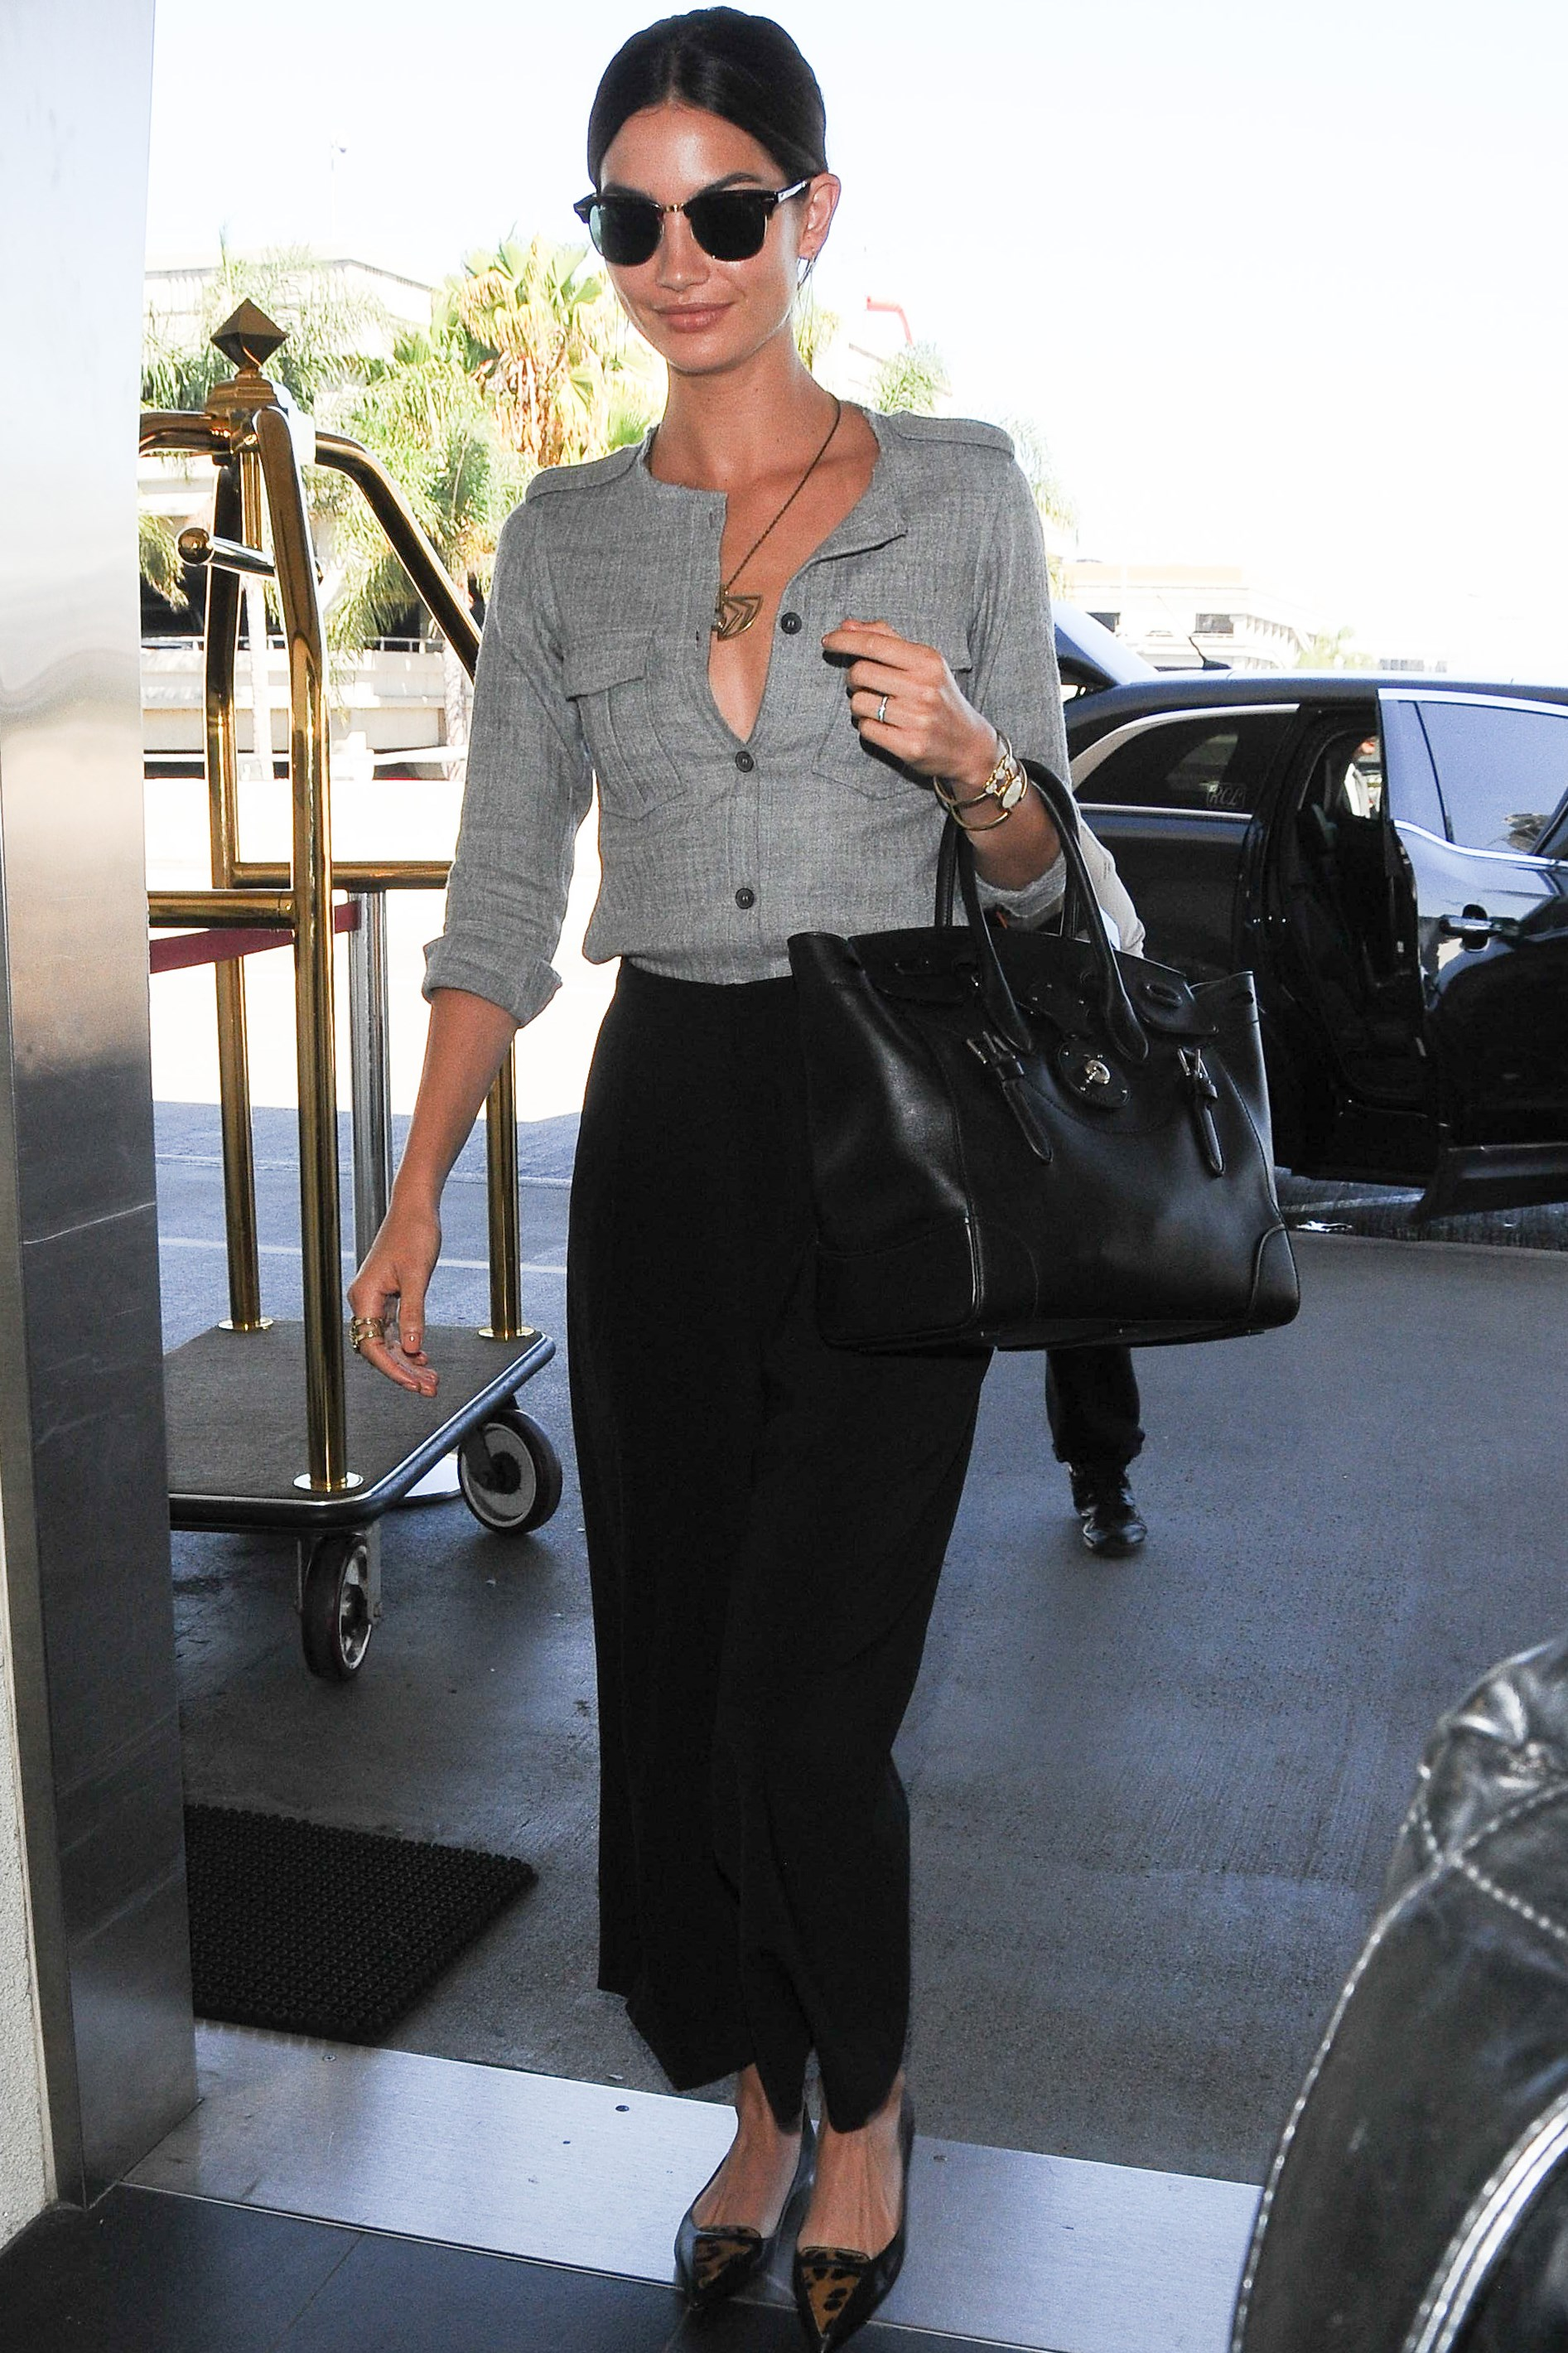 "<strong>Lily Aldridge</strong> <br> You don't have to forsake your personal style in the name of comfort - accessorise with beloved jewellery and chic flats. <br><br> <em>Related: <a href=""http://www.elle.com.au/news/celebrity-news/2014/12/need-to-know-lily-aldridge/"">5 things you need to know about Lily Aldridge</a></em>"